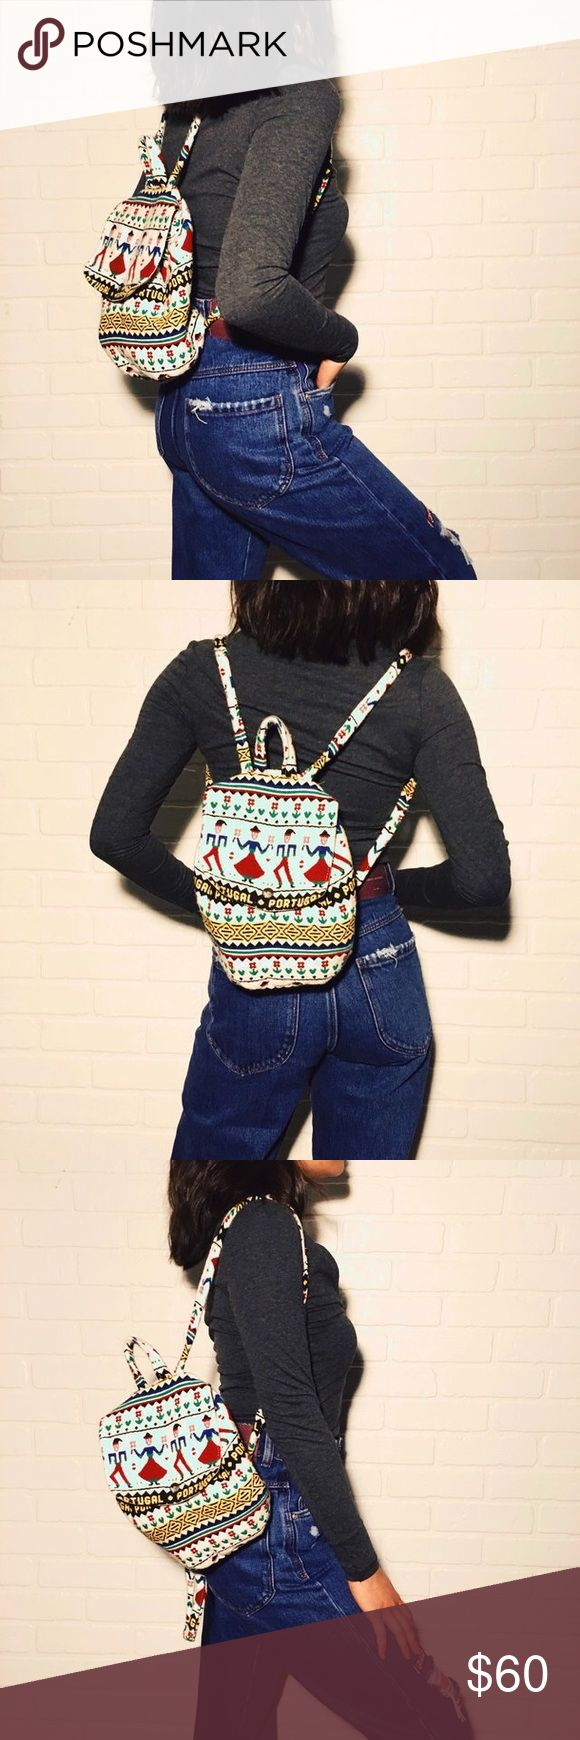 🆕 Funky Mini Backpack ❤ Funky Mini Backpack. This little backpack is the perfect size to carry your phone, wallet, and other little essentials. Great for upcoming concert season! Super unique and adorable with its tribal print. #backpack #minibackpack vintage and one of a kind! Topshop Bags